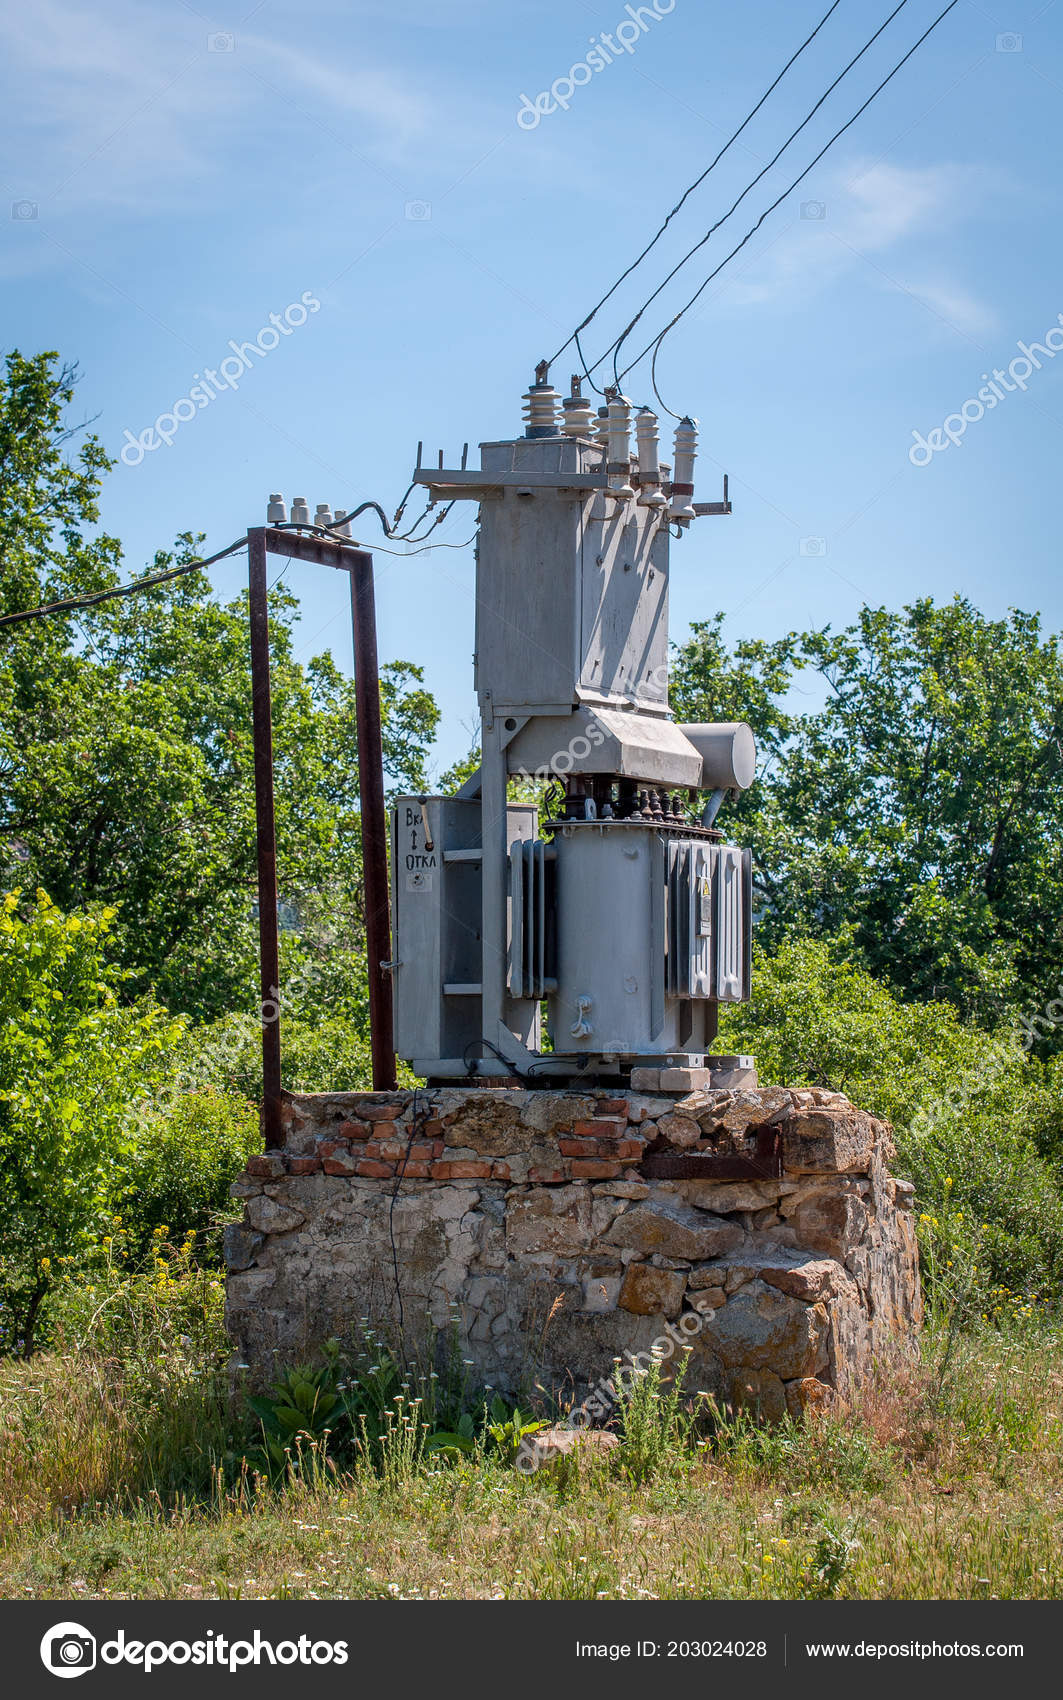 hight resolution of electrical transformer stone stand old high voltage power station stock photo